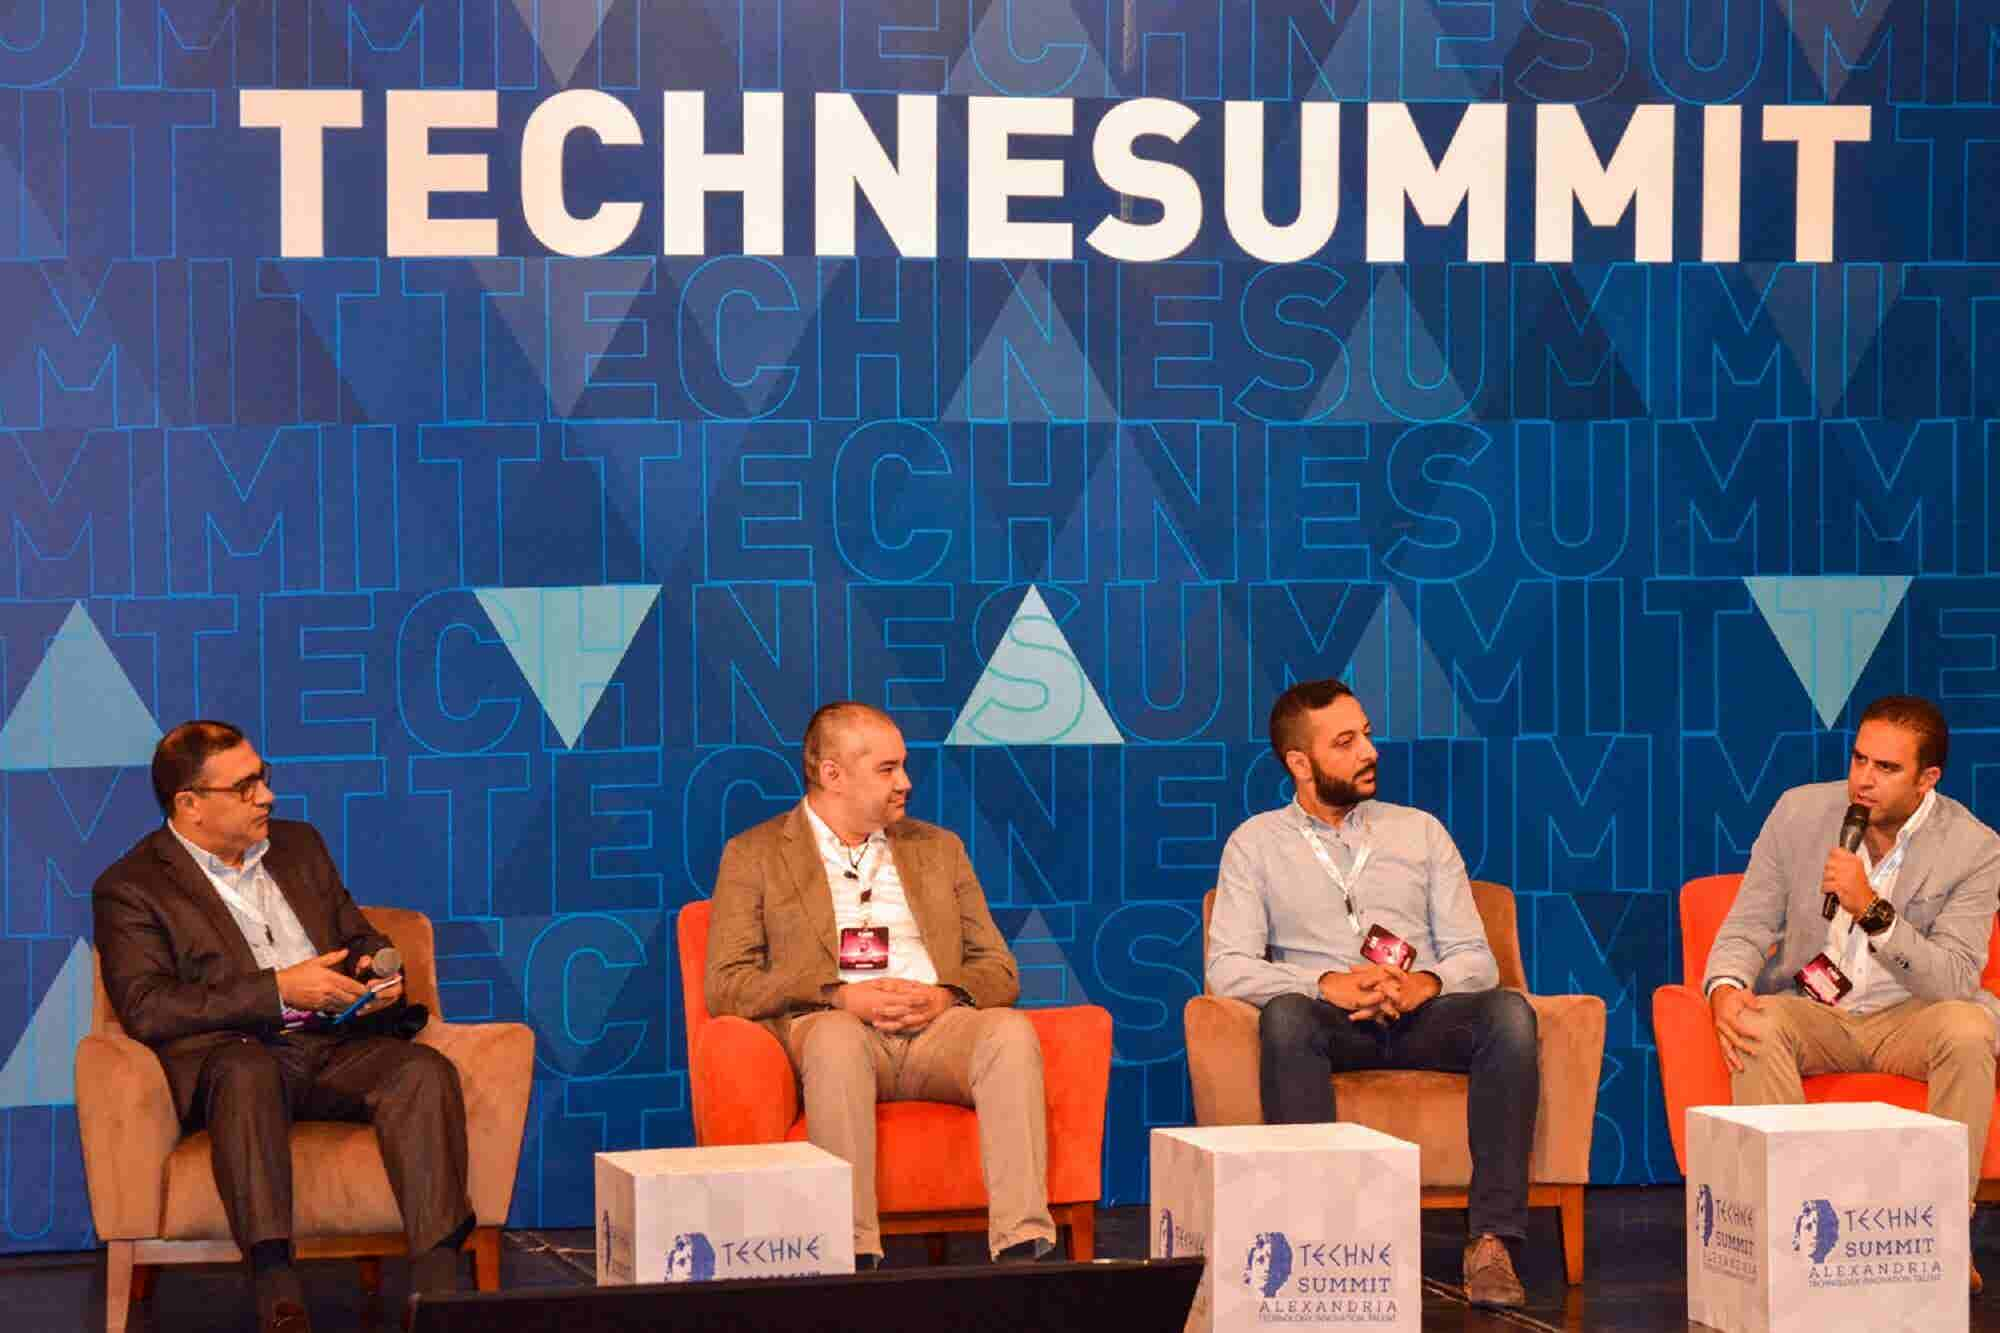 How Techne Summit 2018 Showcased The Best of Technology